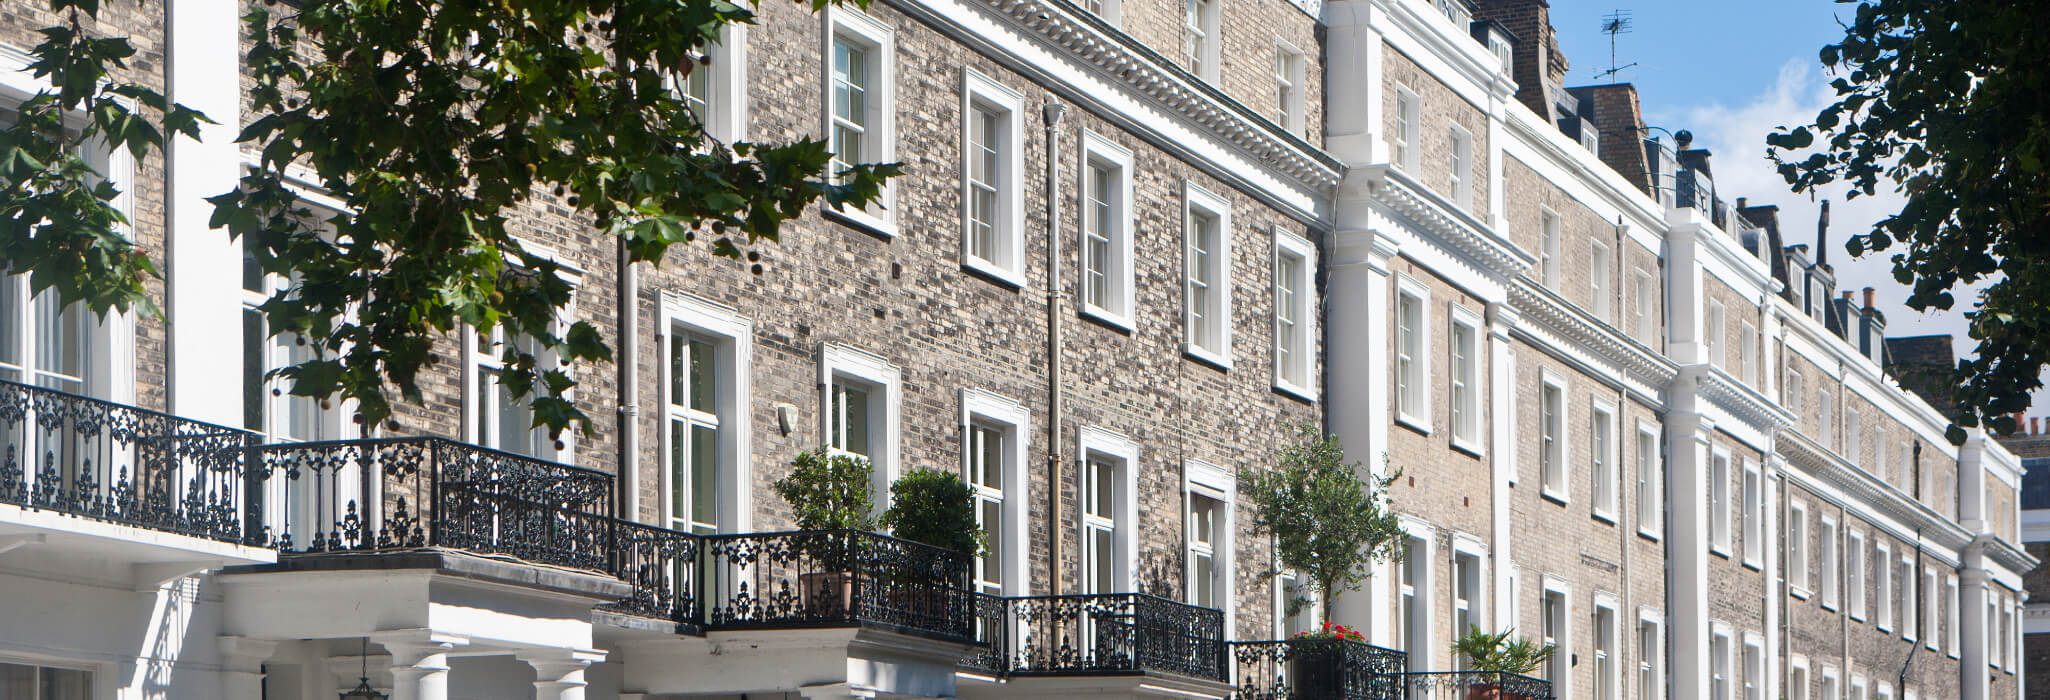 Bristol Residential Property Market